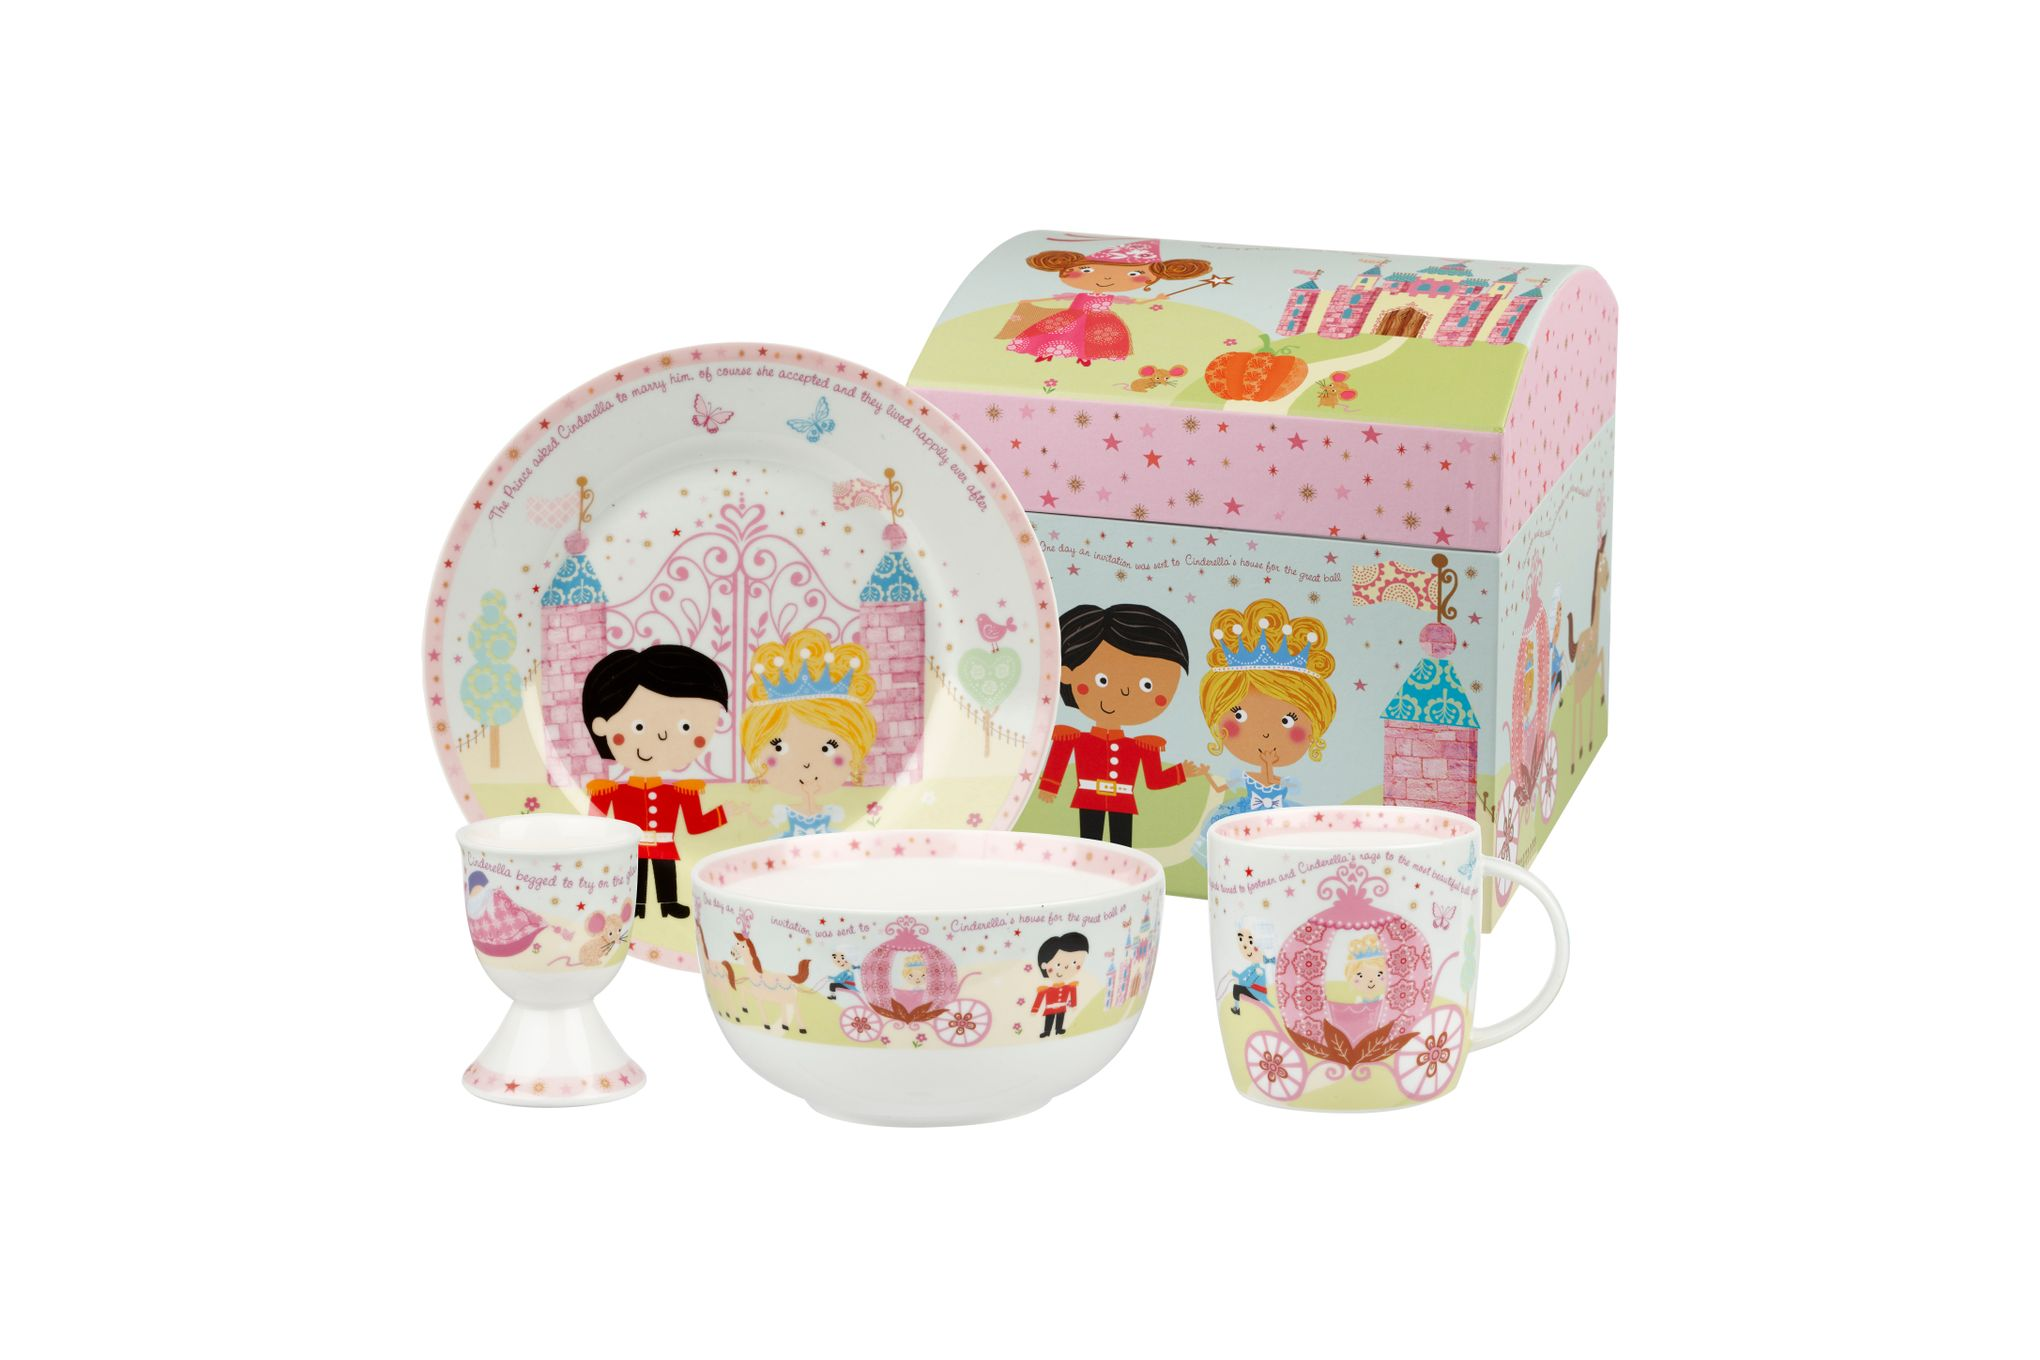 Churchill Little Rhymes Collection - Cinderella 4 Piece Breakfast Gift Box Set Set contains plate, bowl, egg cup and mug thumb 1